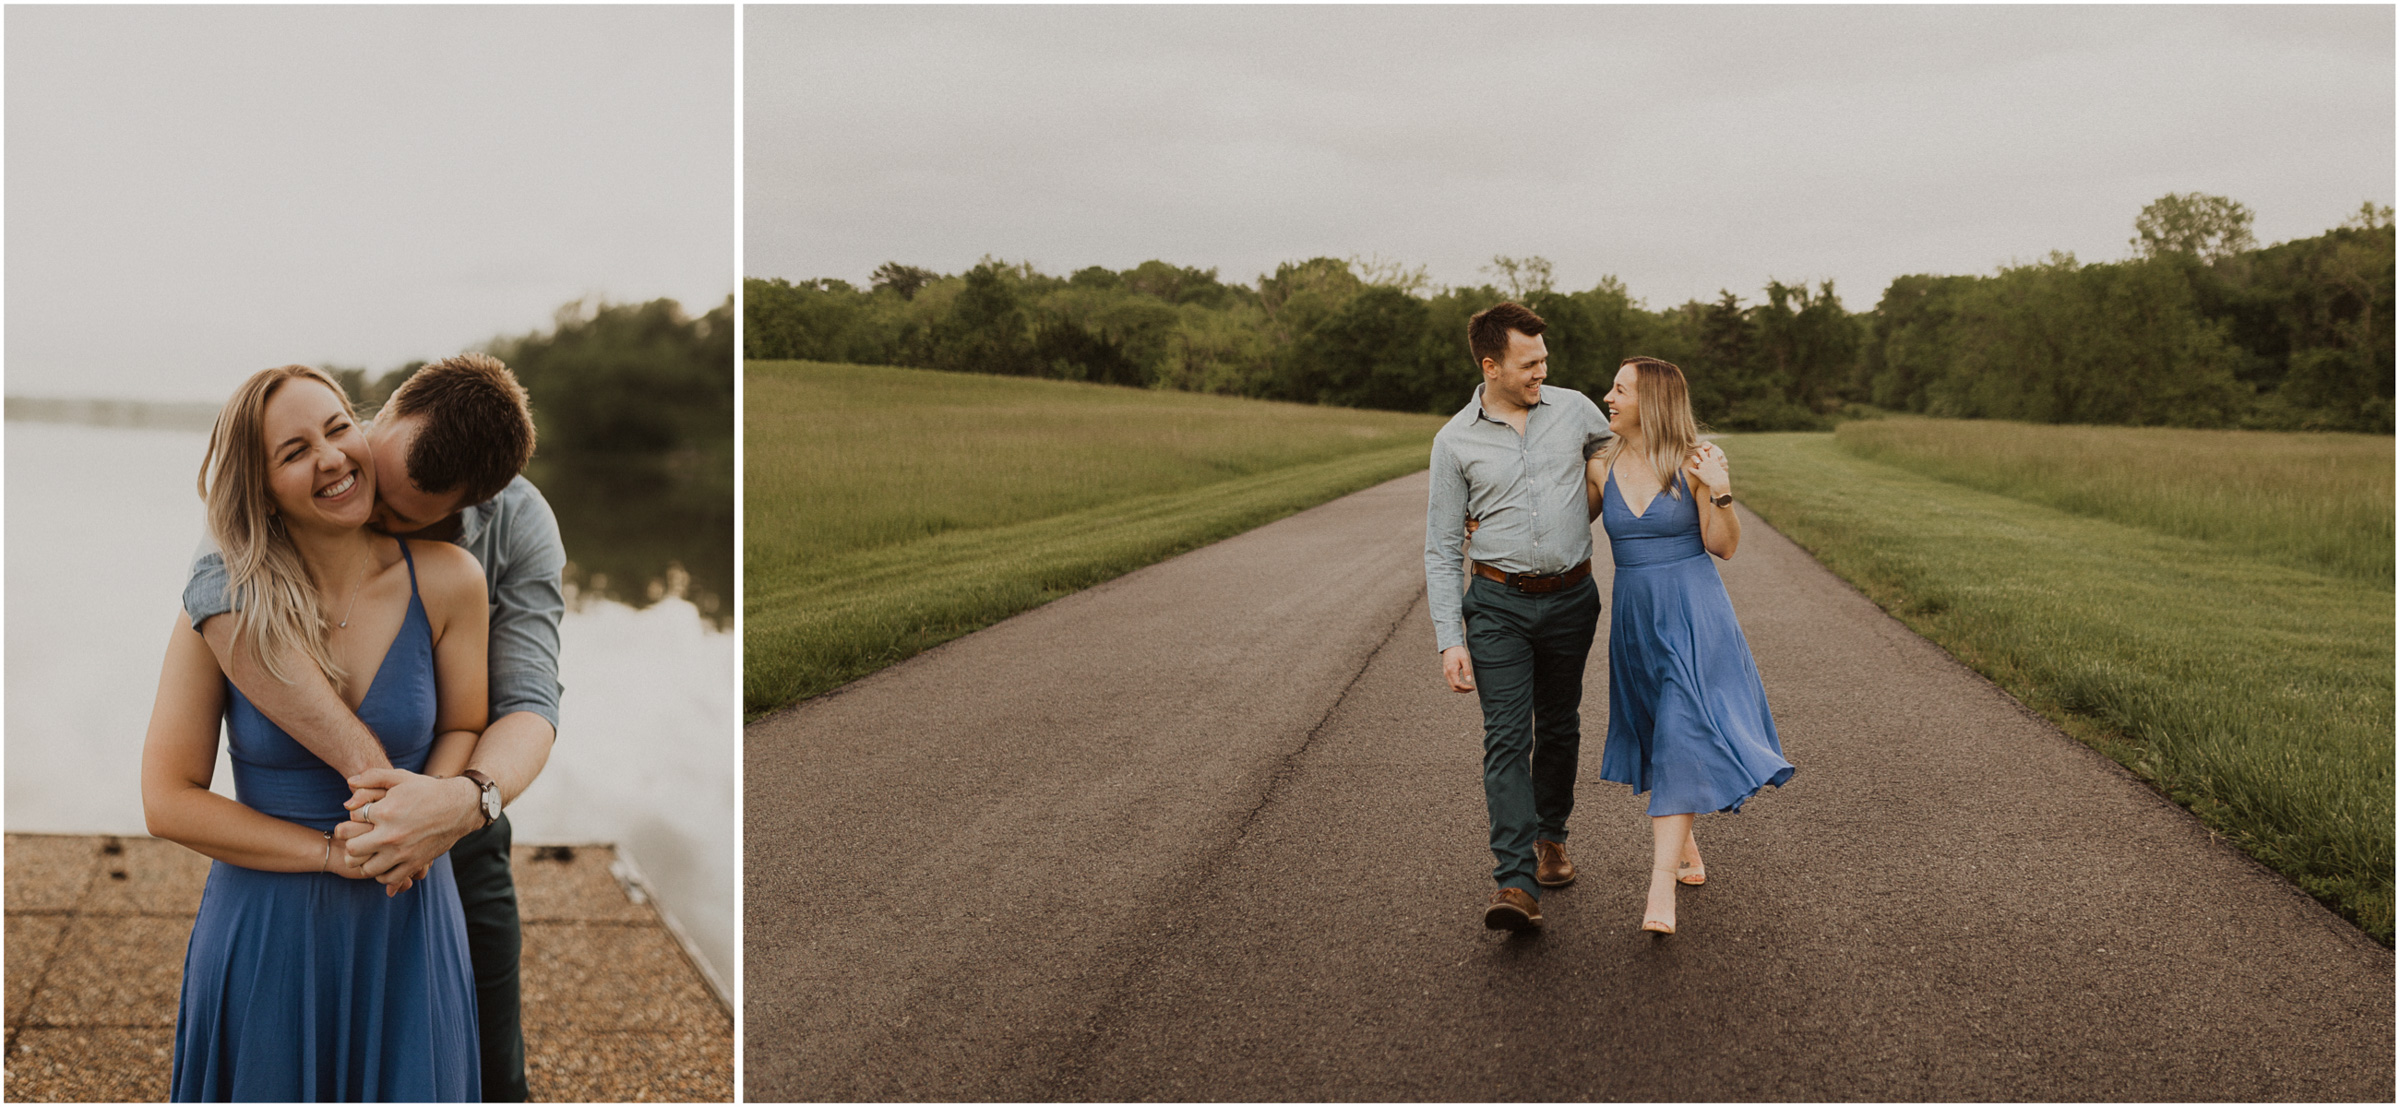 alyssa barletter photography shawnee mission park engagement session photographer sunset-16.jpg